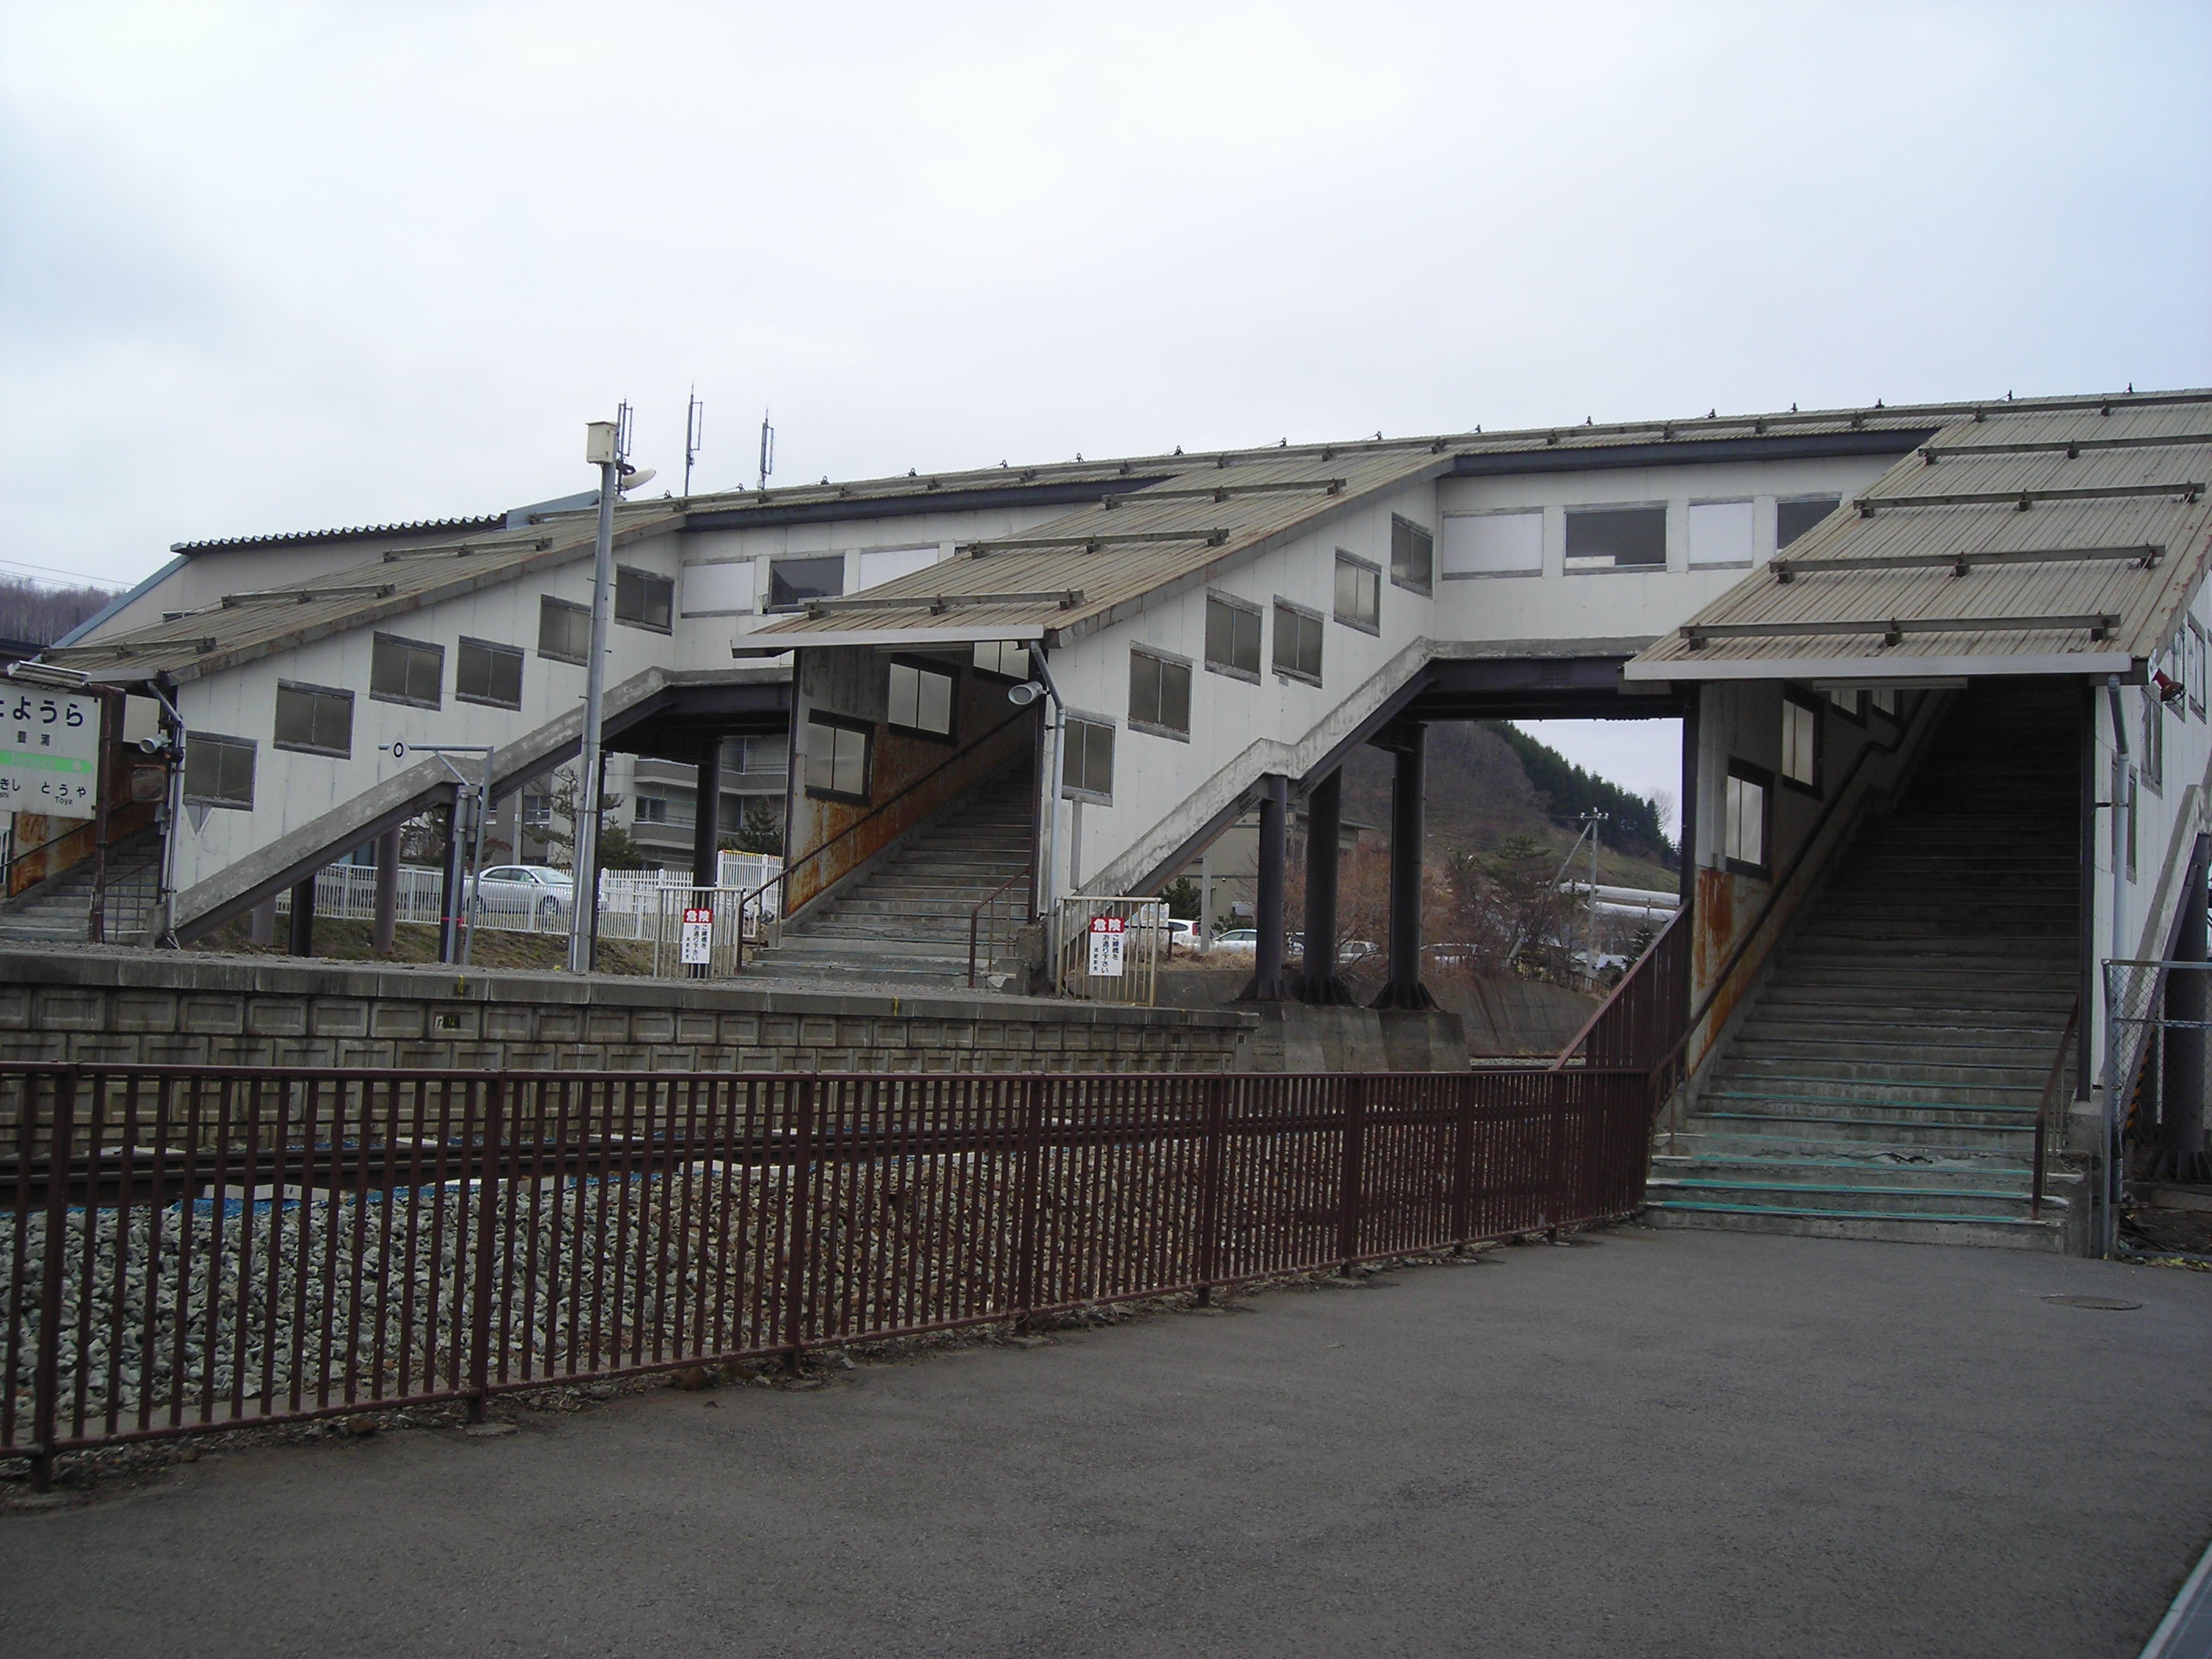 https://upload.wikimedia.org/wikipedia/commons/c/c0/Toyoura_sta_overpass.JPG